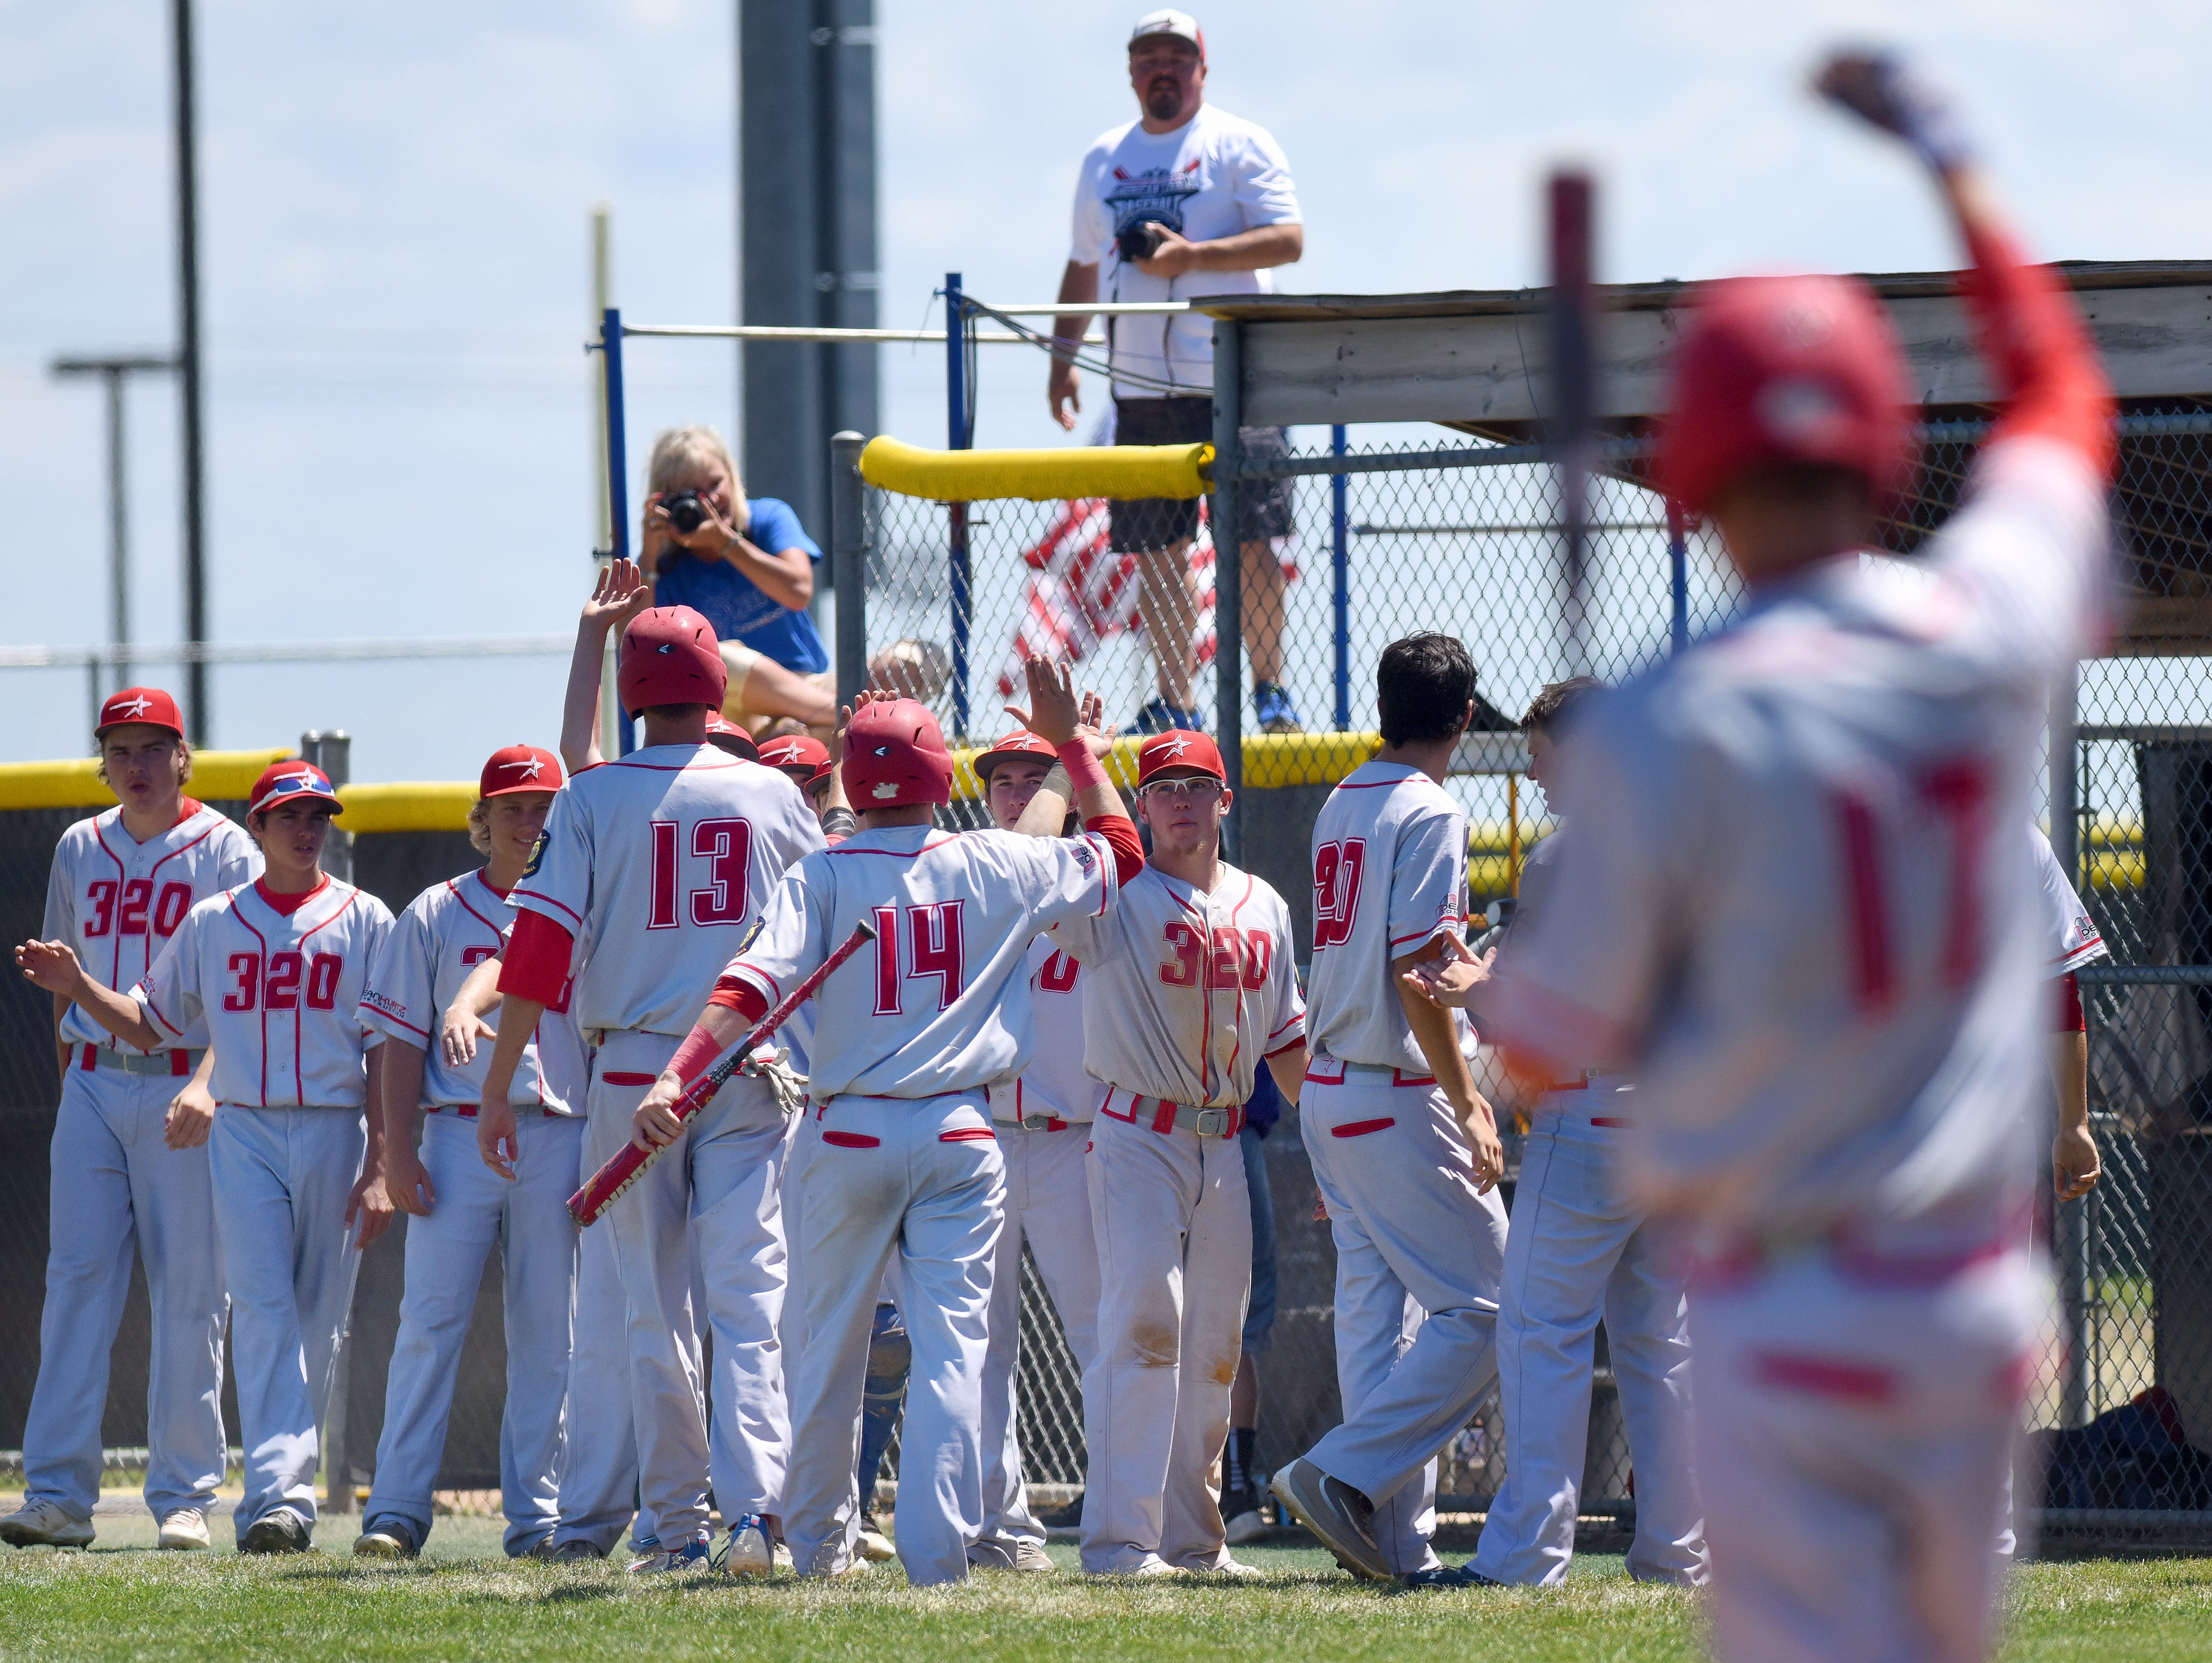 Rapid City Post 320 celebrate with teammates after scoring against Sioux Falls East Post 15 during the American Legion Class A Baseball State Tournament at Harmodon Park on Saturday afternoon.